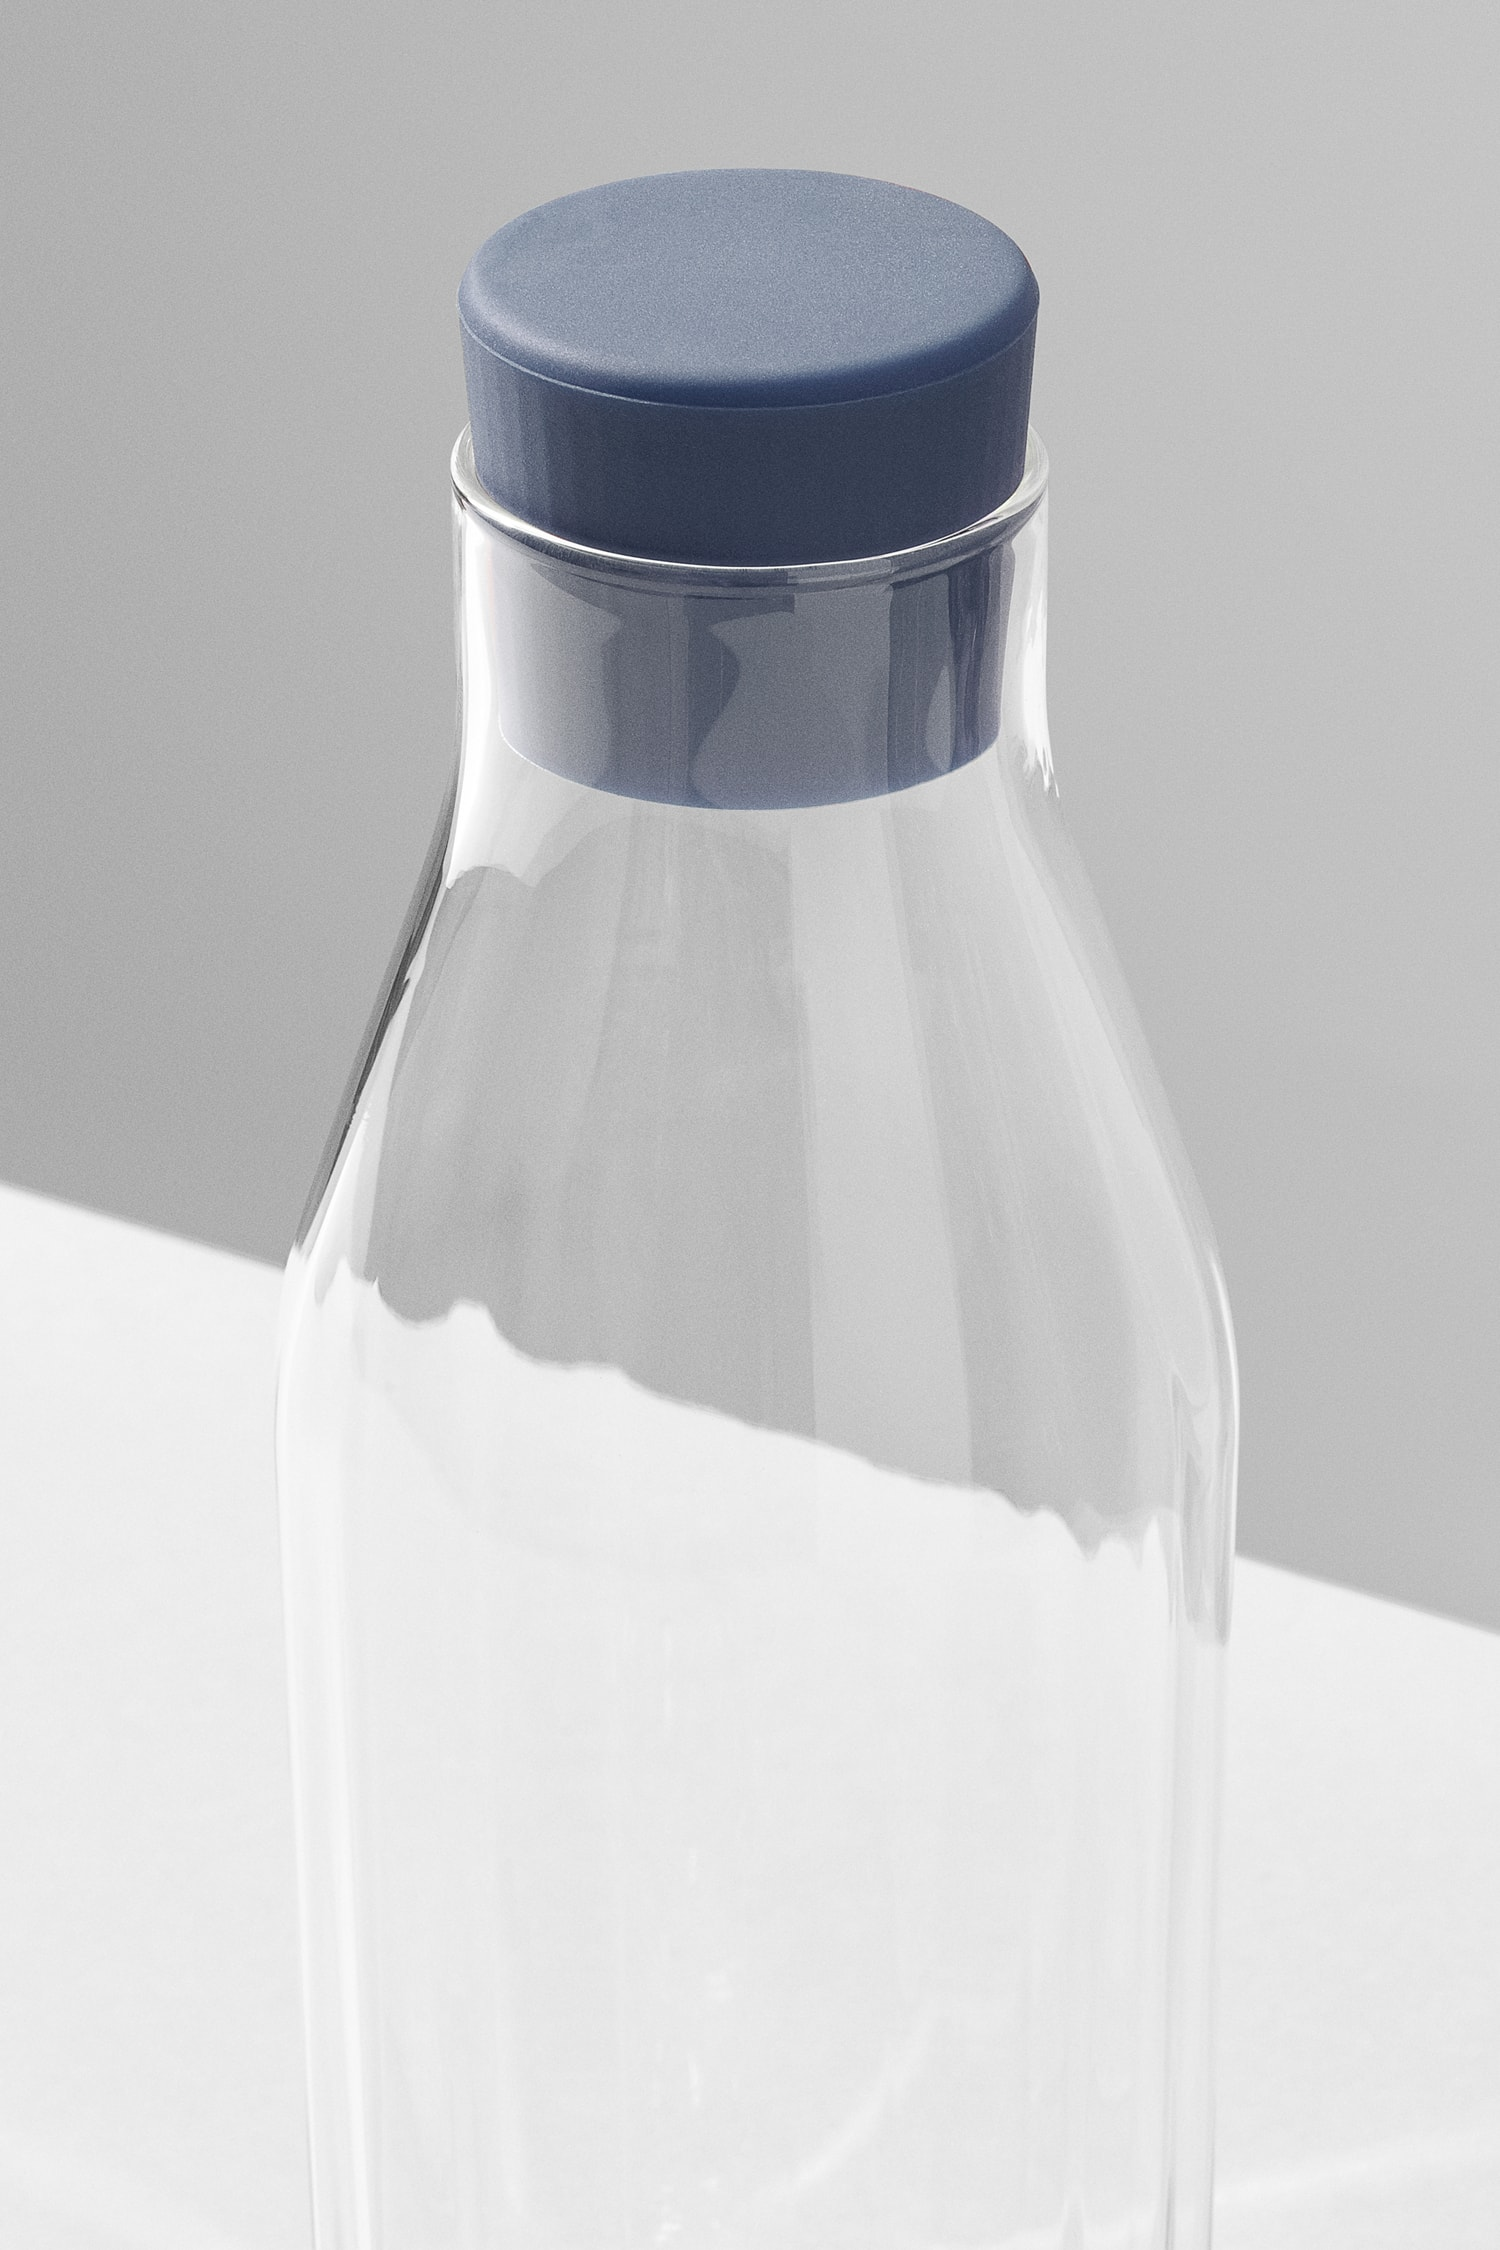 Perspective view of the top of the Rivington Glassware carafe showing the facets, blue stopper.